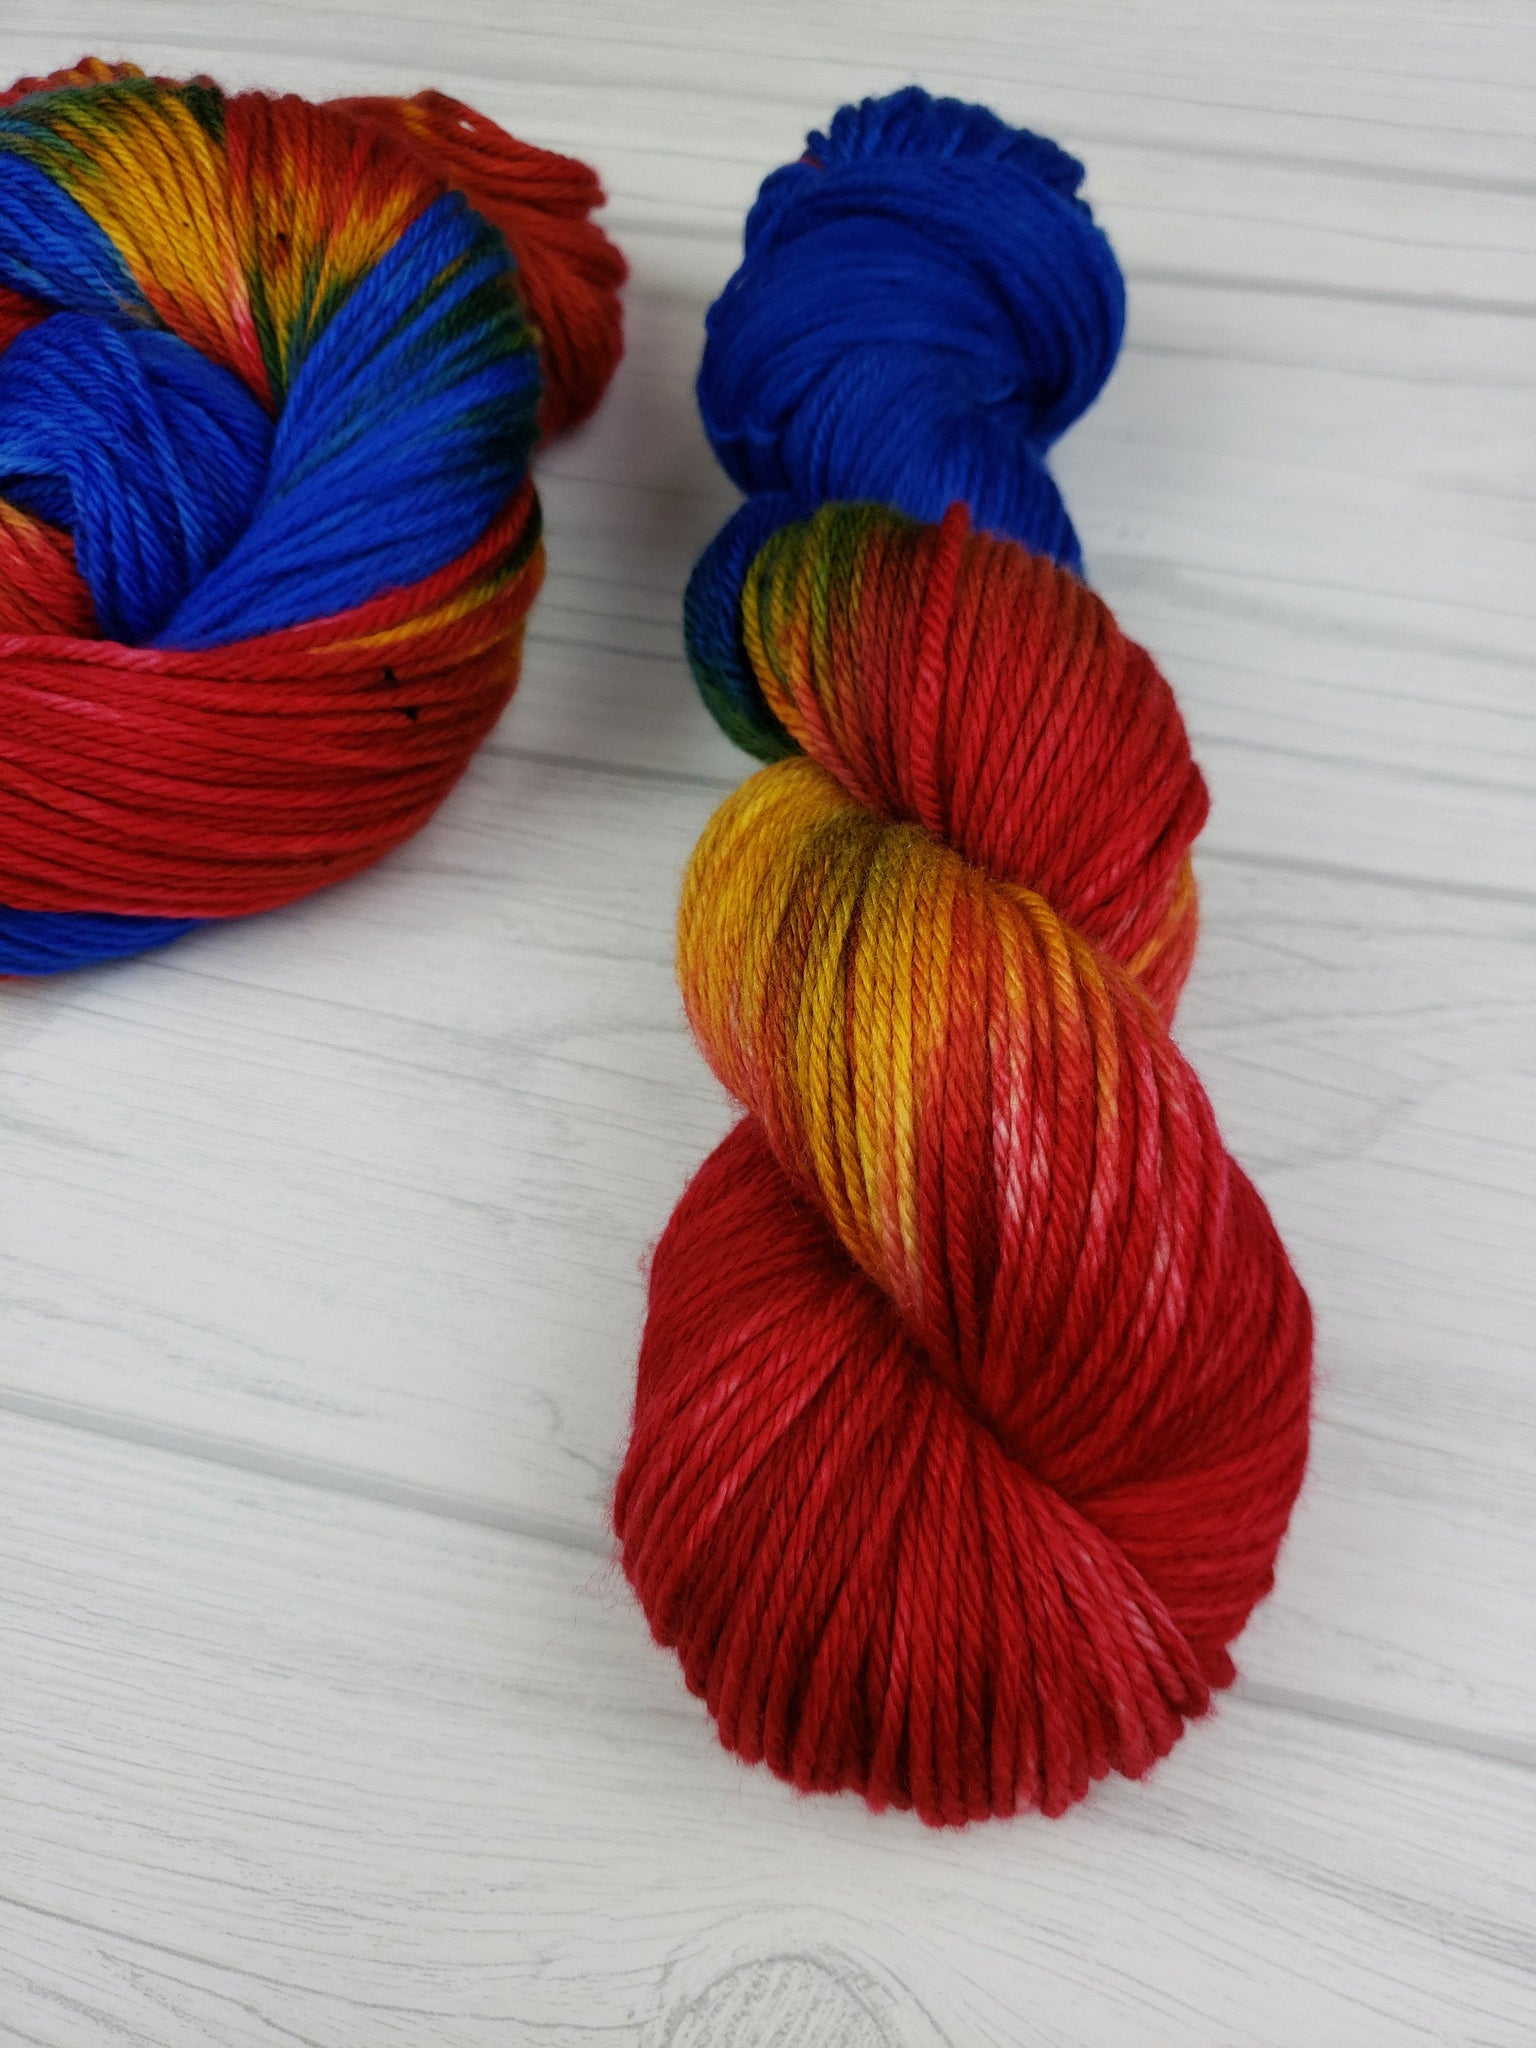 Captain Marvel, Hand Dyed Yarn in DK Weight - Spindle warps yarns